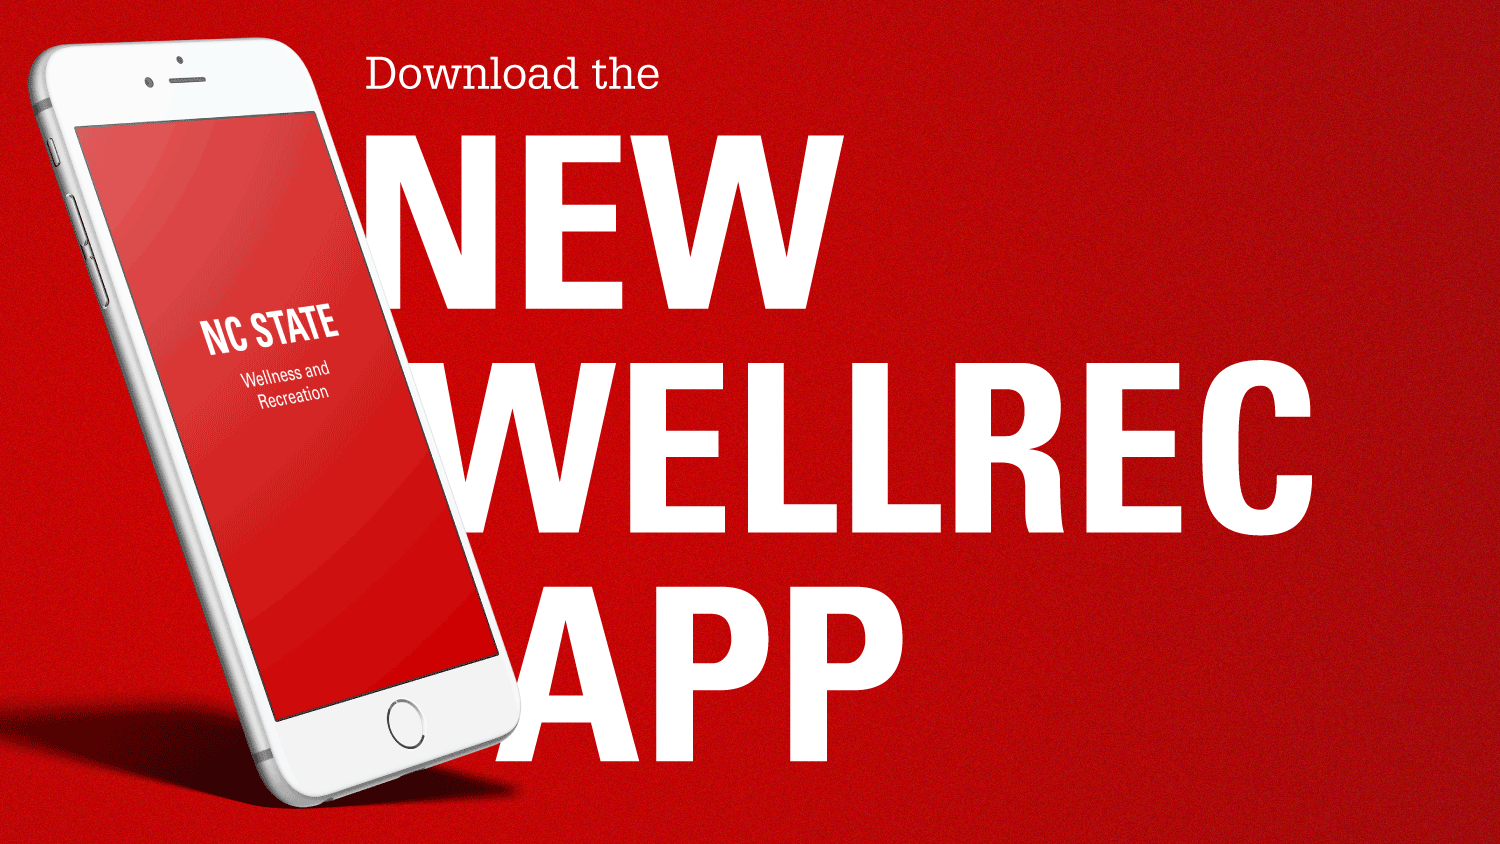 Ad for NC State WellRec app.